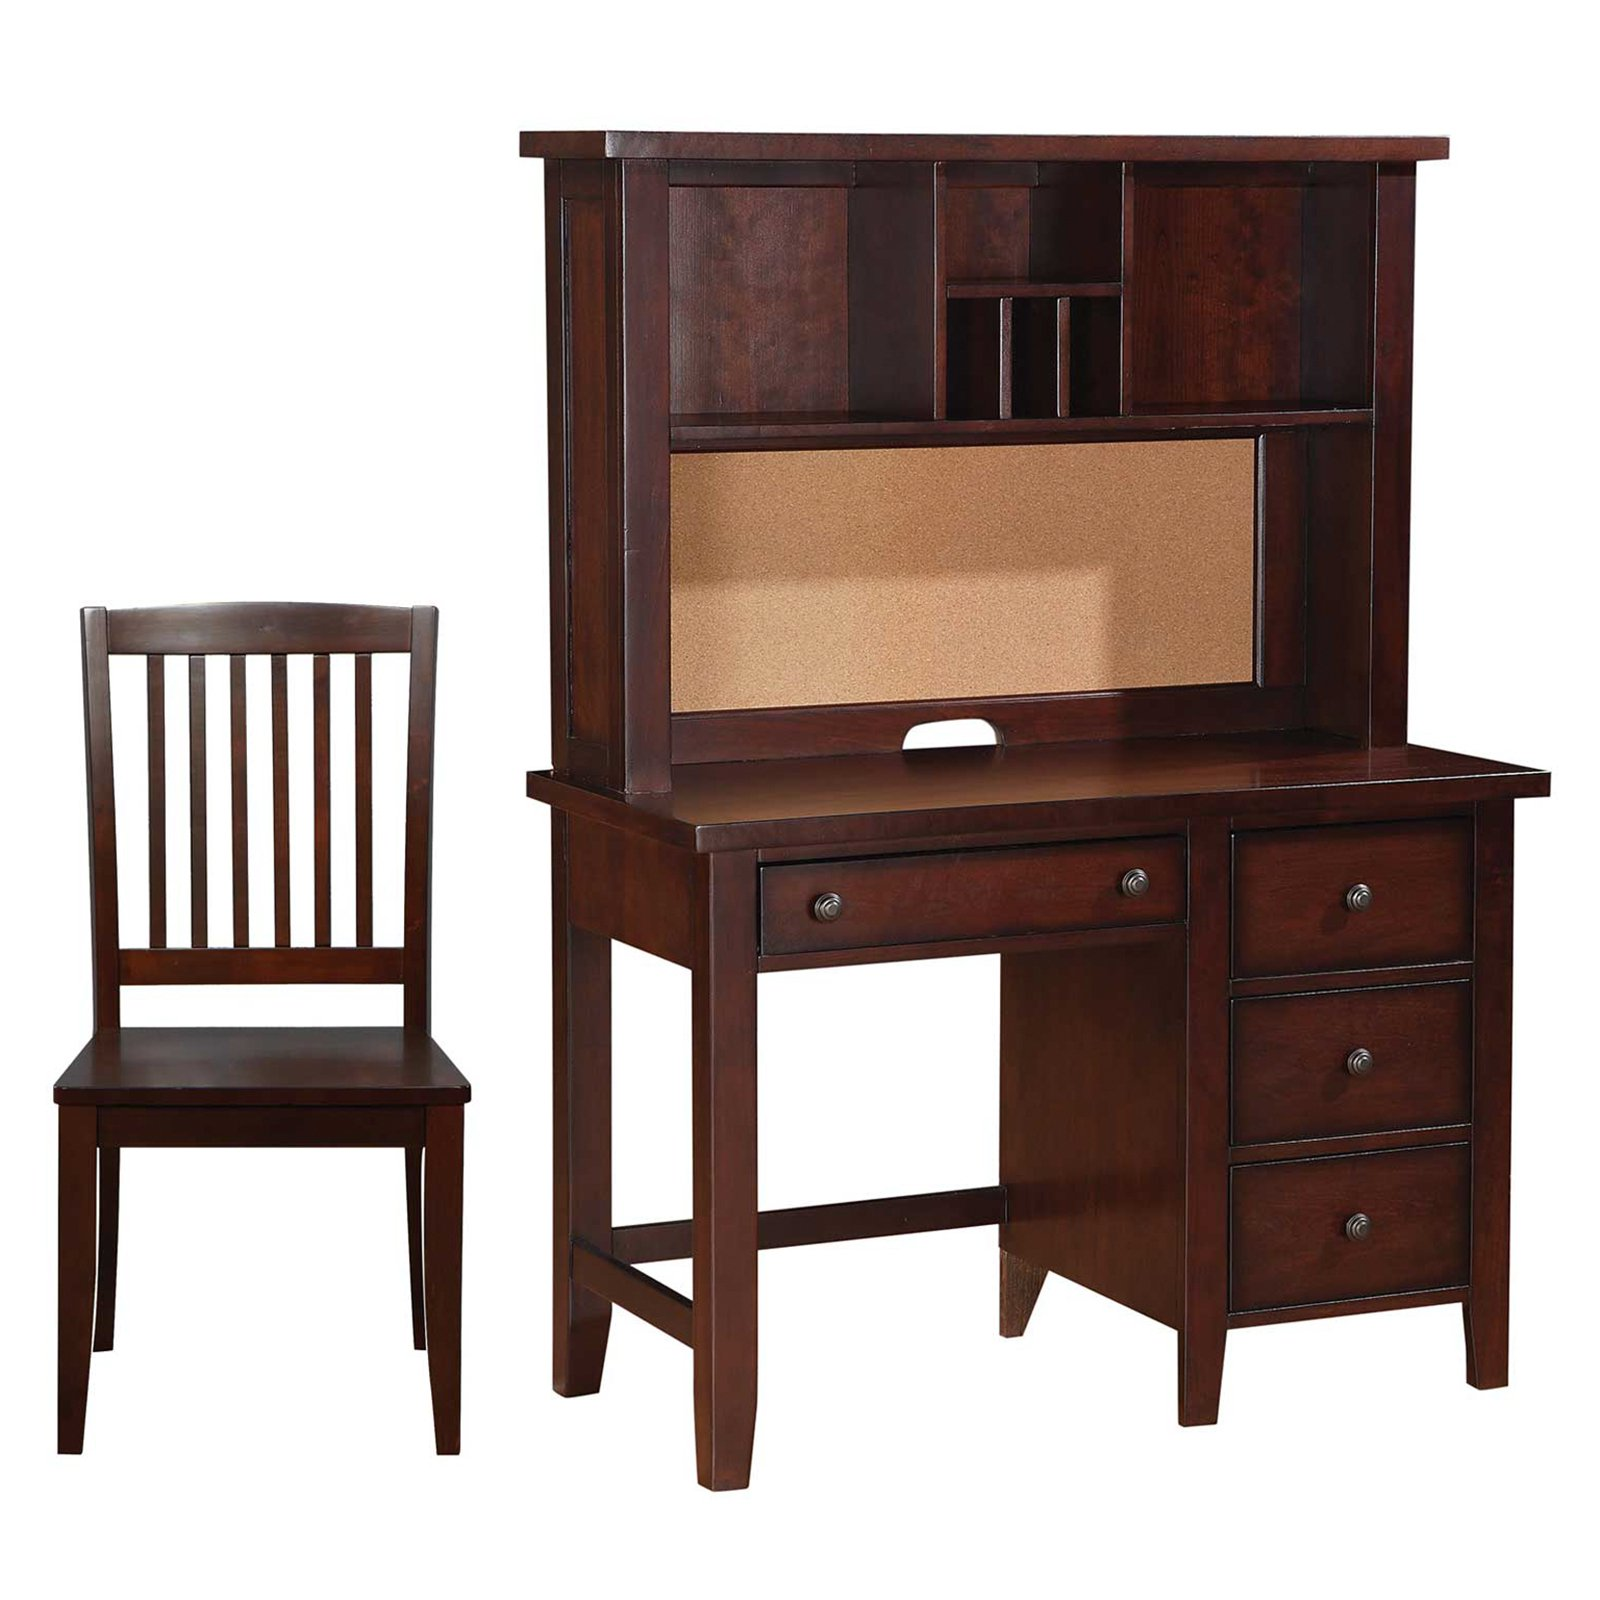 Winners Only Vintage 44 in. Writing Desk with Optional Hutch & Chair - Cherry